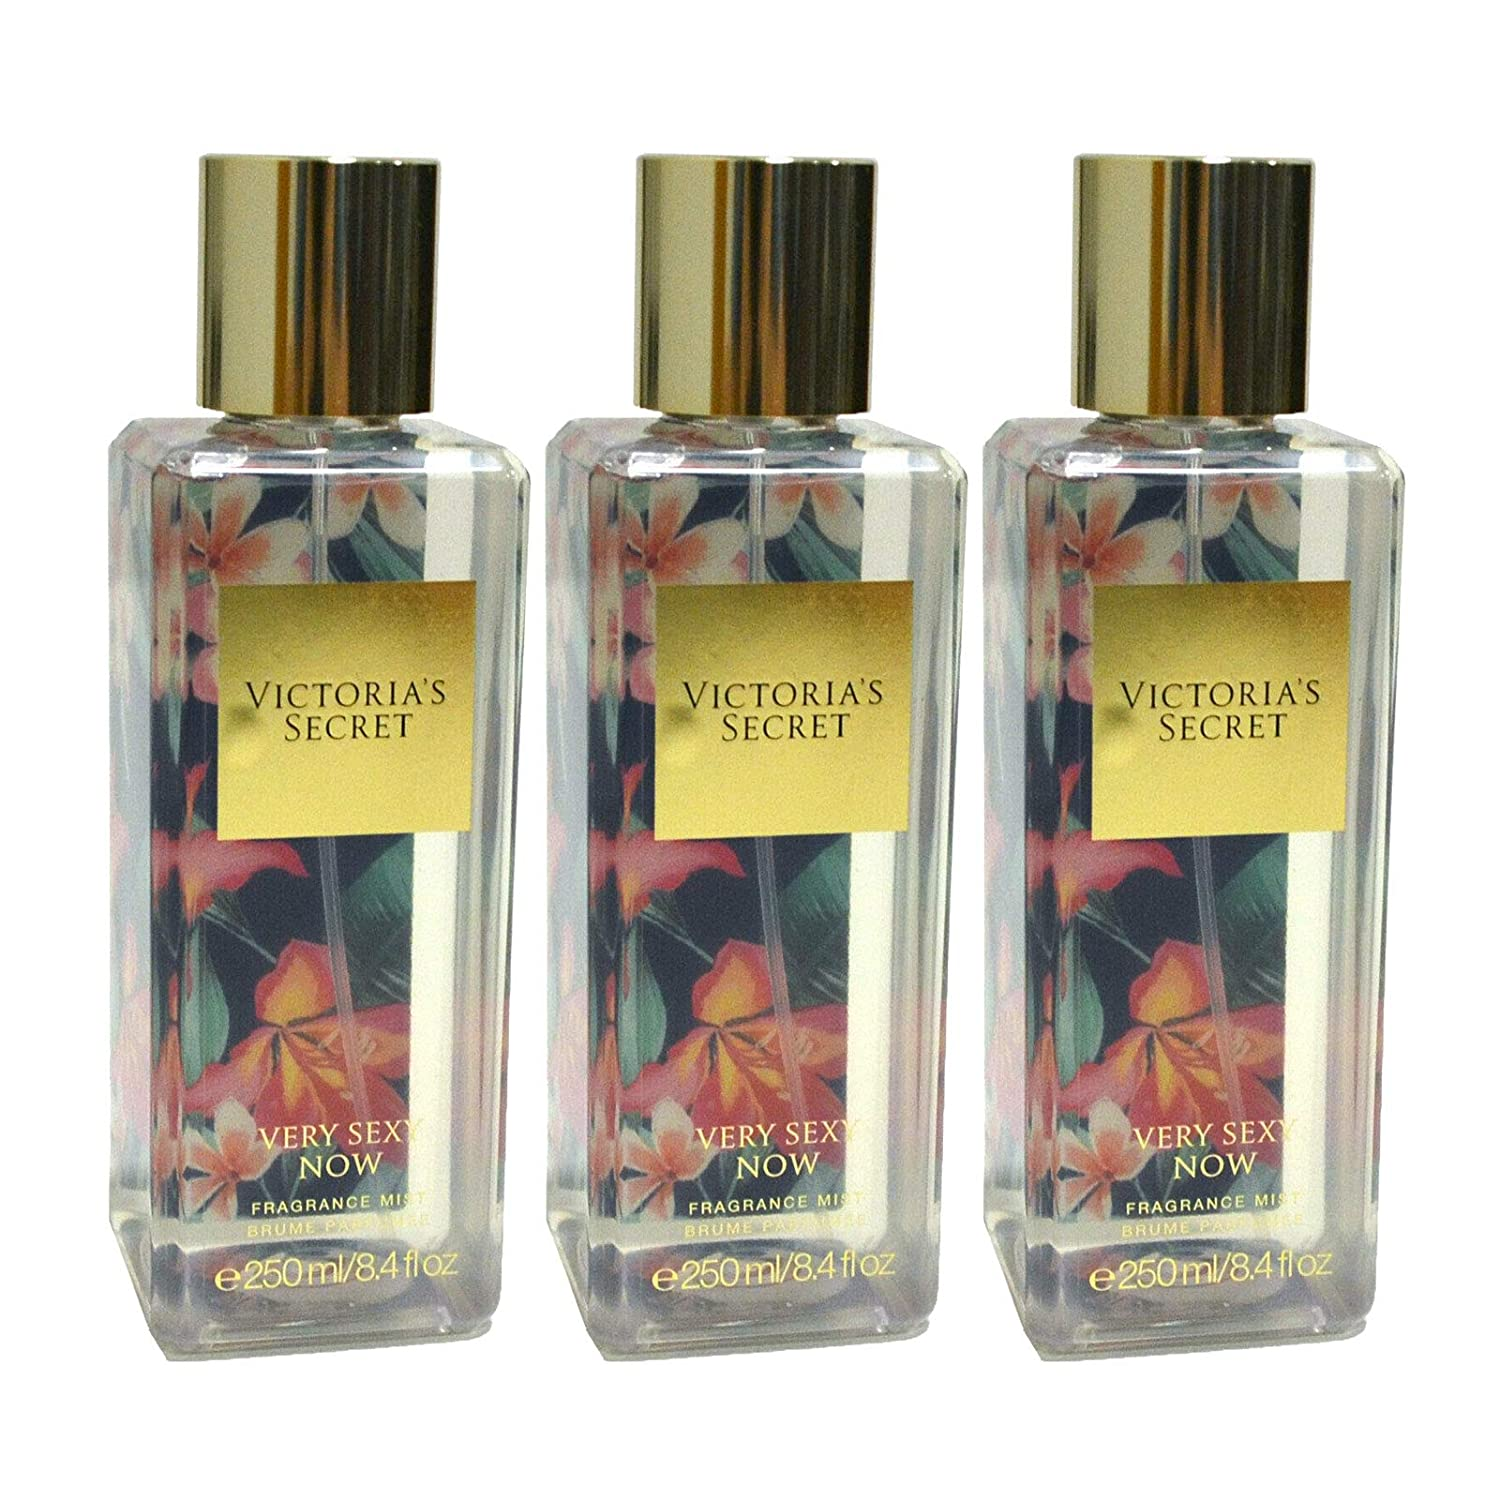 Victoria's Secret Fragrance Mist Lot of 3 (Very Sexy Now)